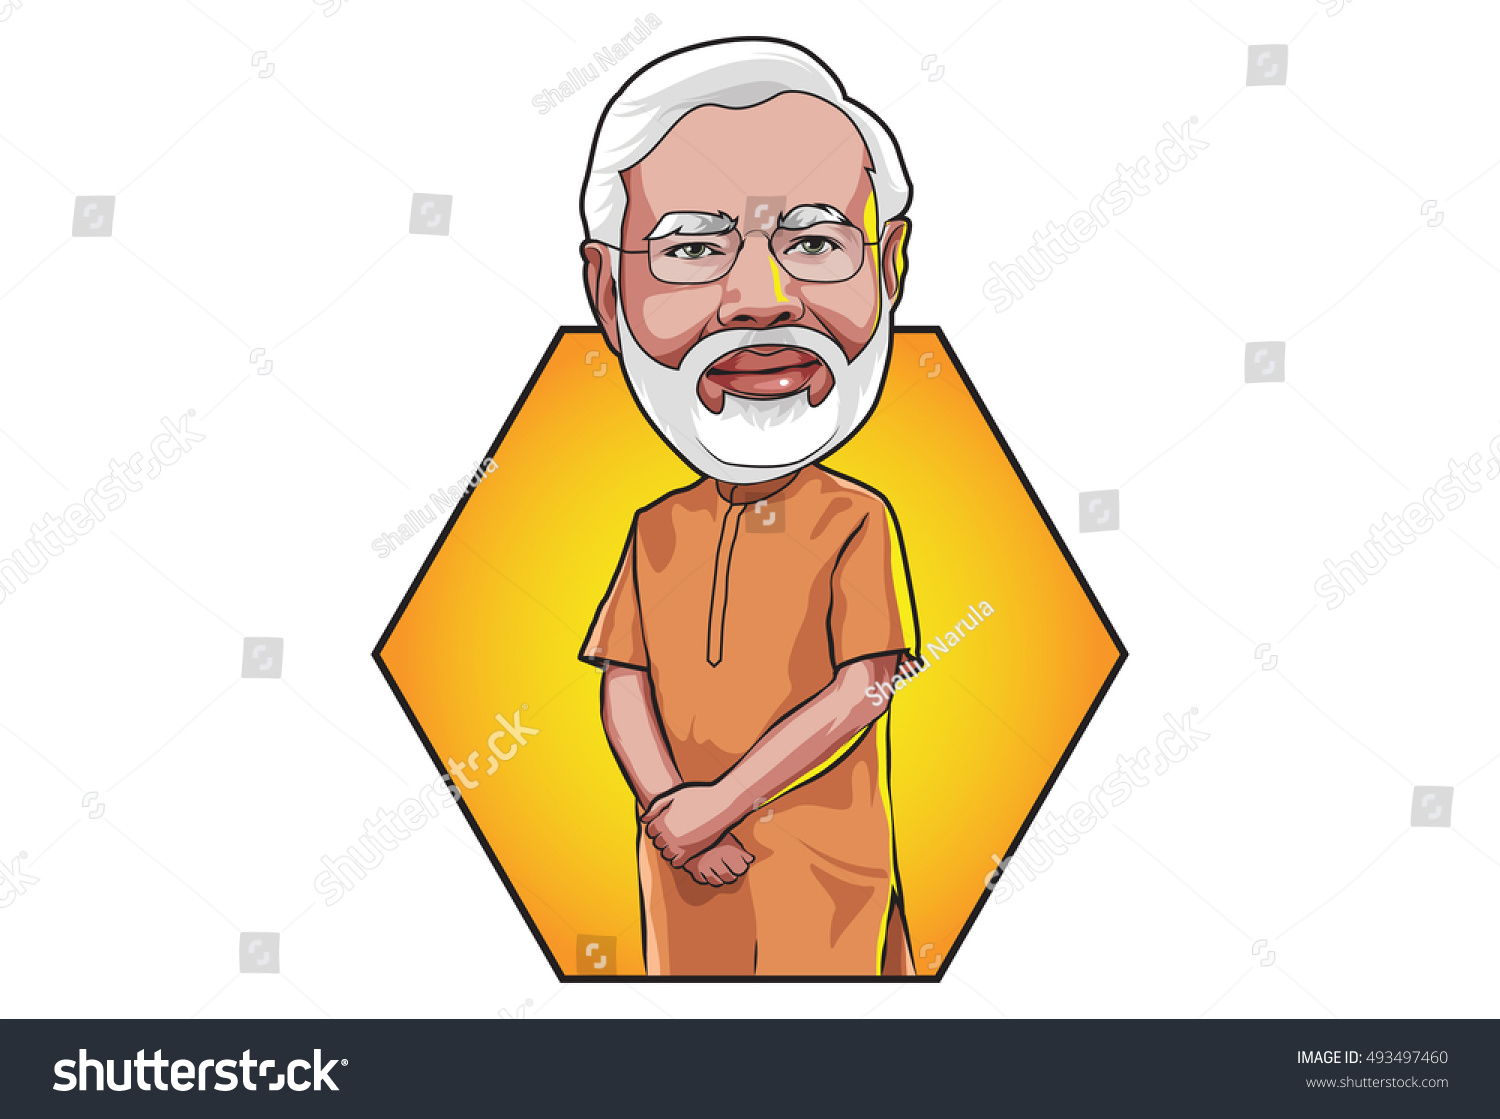 Oct 5 2016 Caricature character illustration of Narendra Modi Prime Minister of India